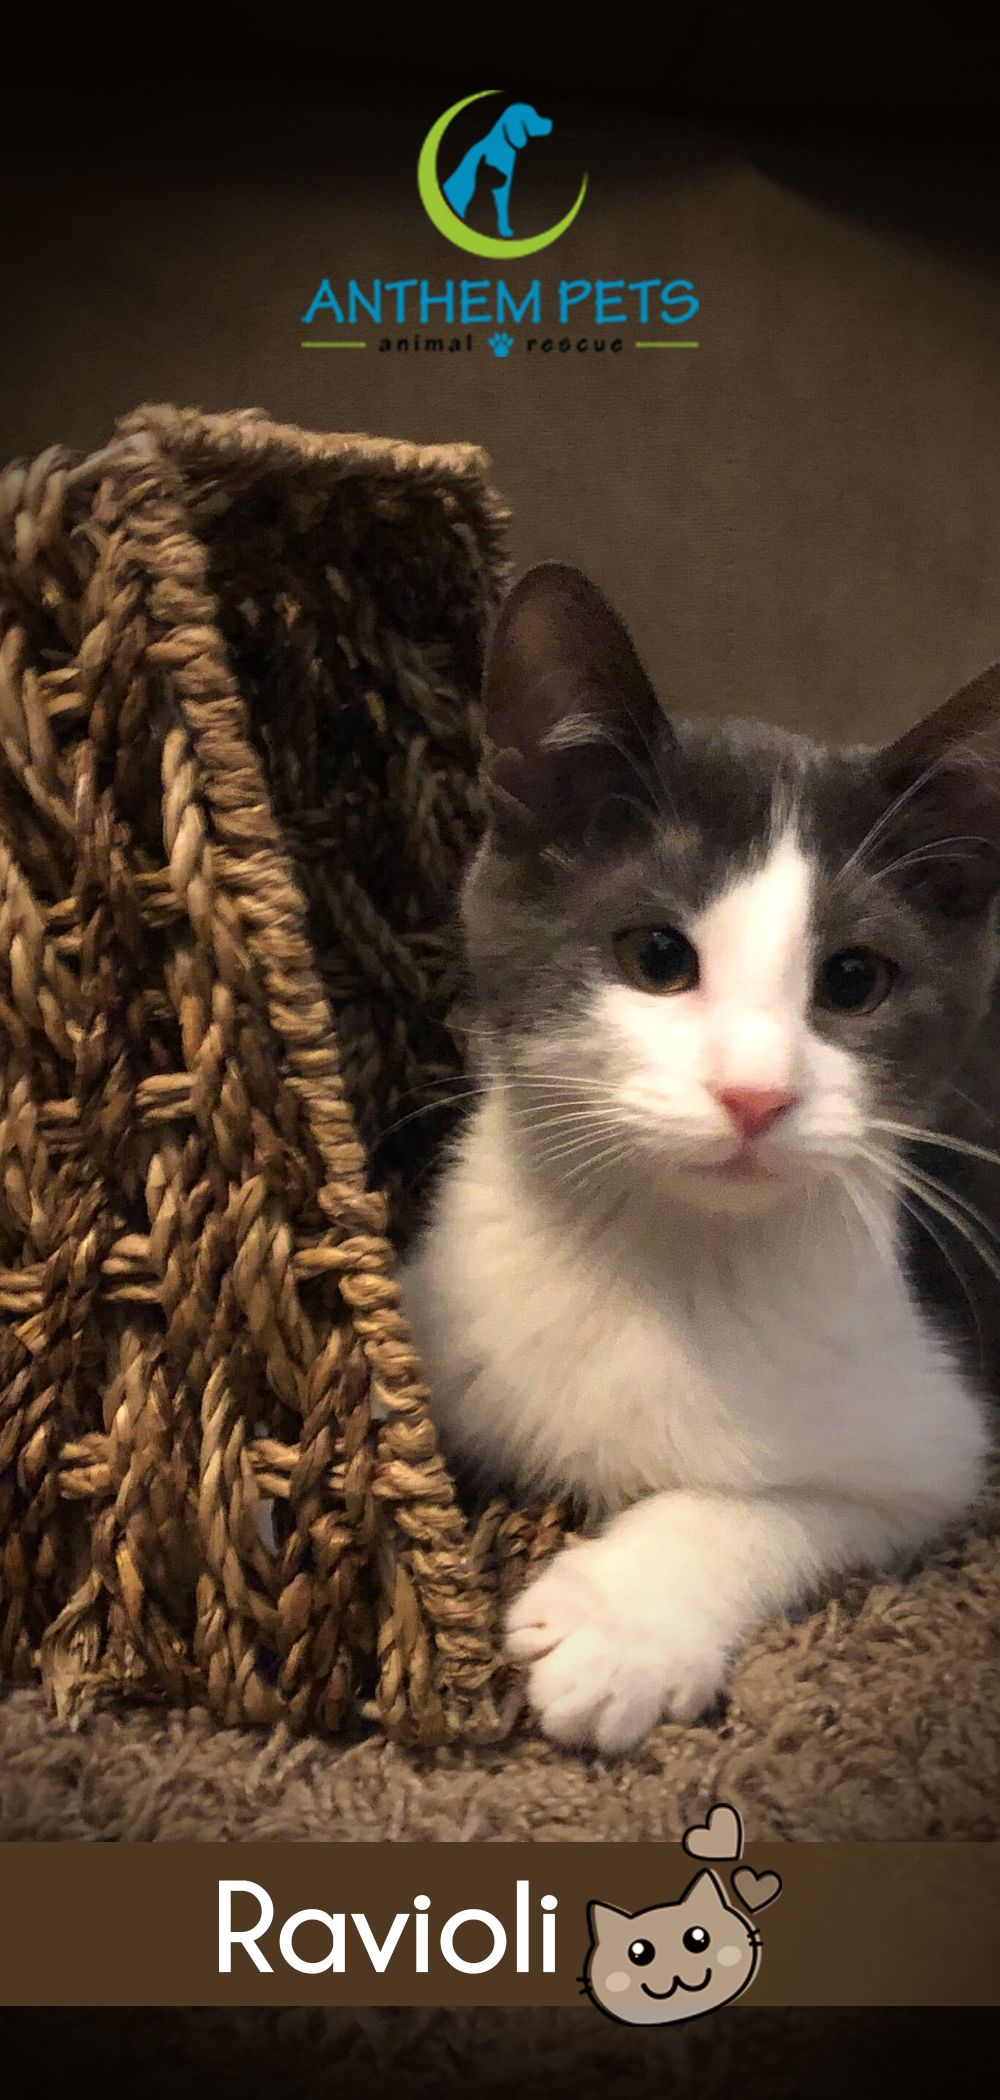 Time To Make Ravioli A Part Of Your Family This Boy Is A Short Hair Mix And Has Beautiful Markings His Adoption Fee I In 2020 Pet Names Cat Adoption Cats